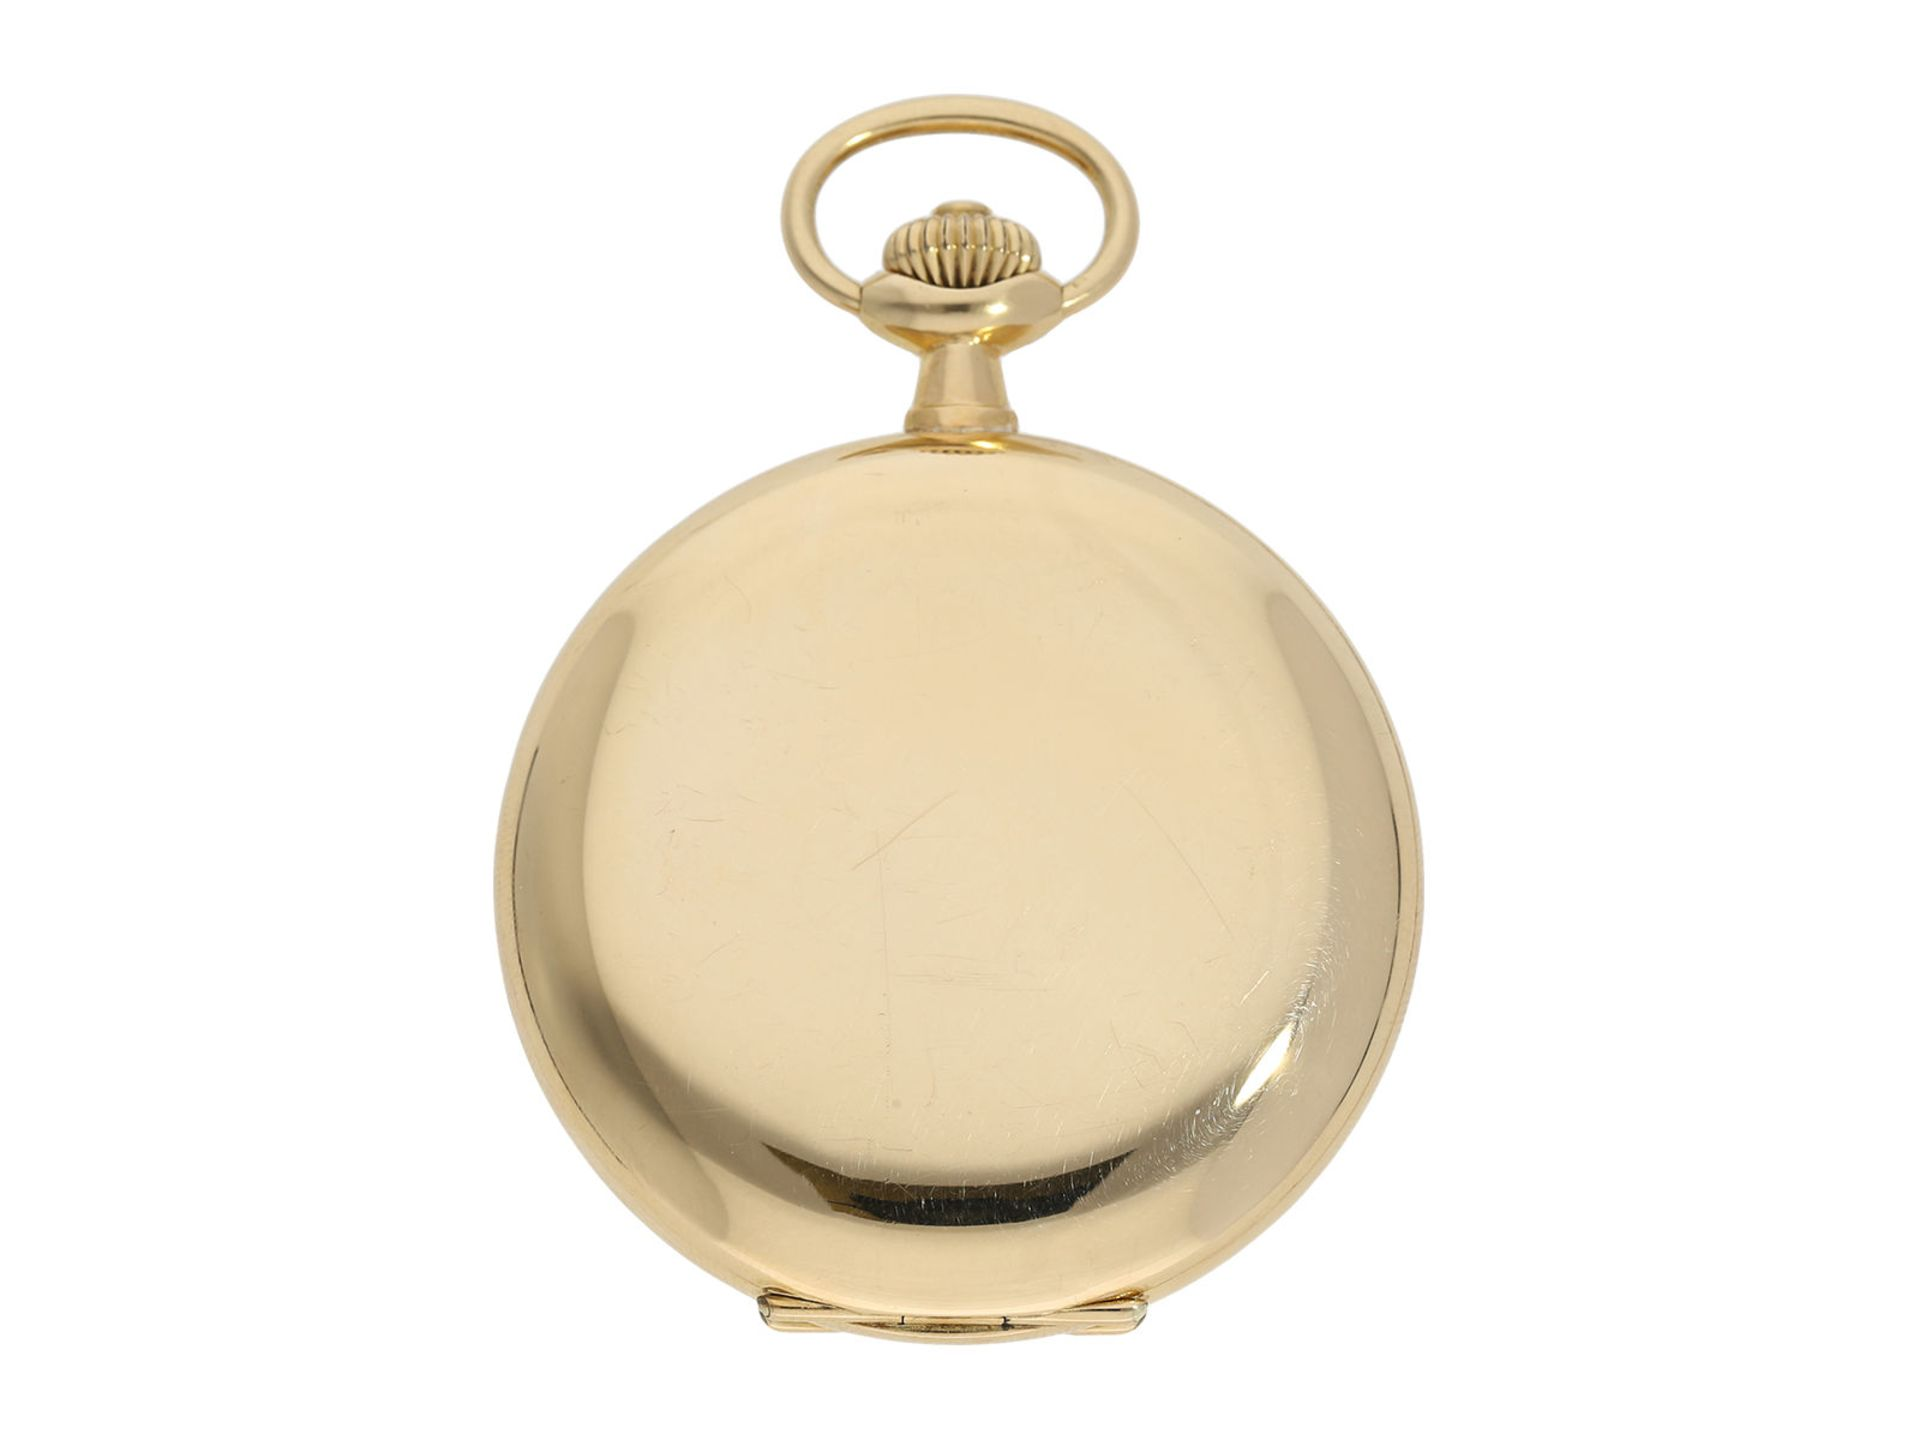 Pocket watch: Omega gold hunting case watch, ca. 1912 - Bild 7 aus 8